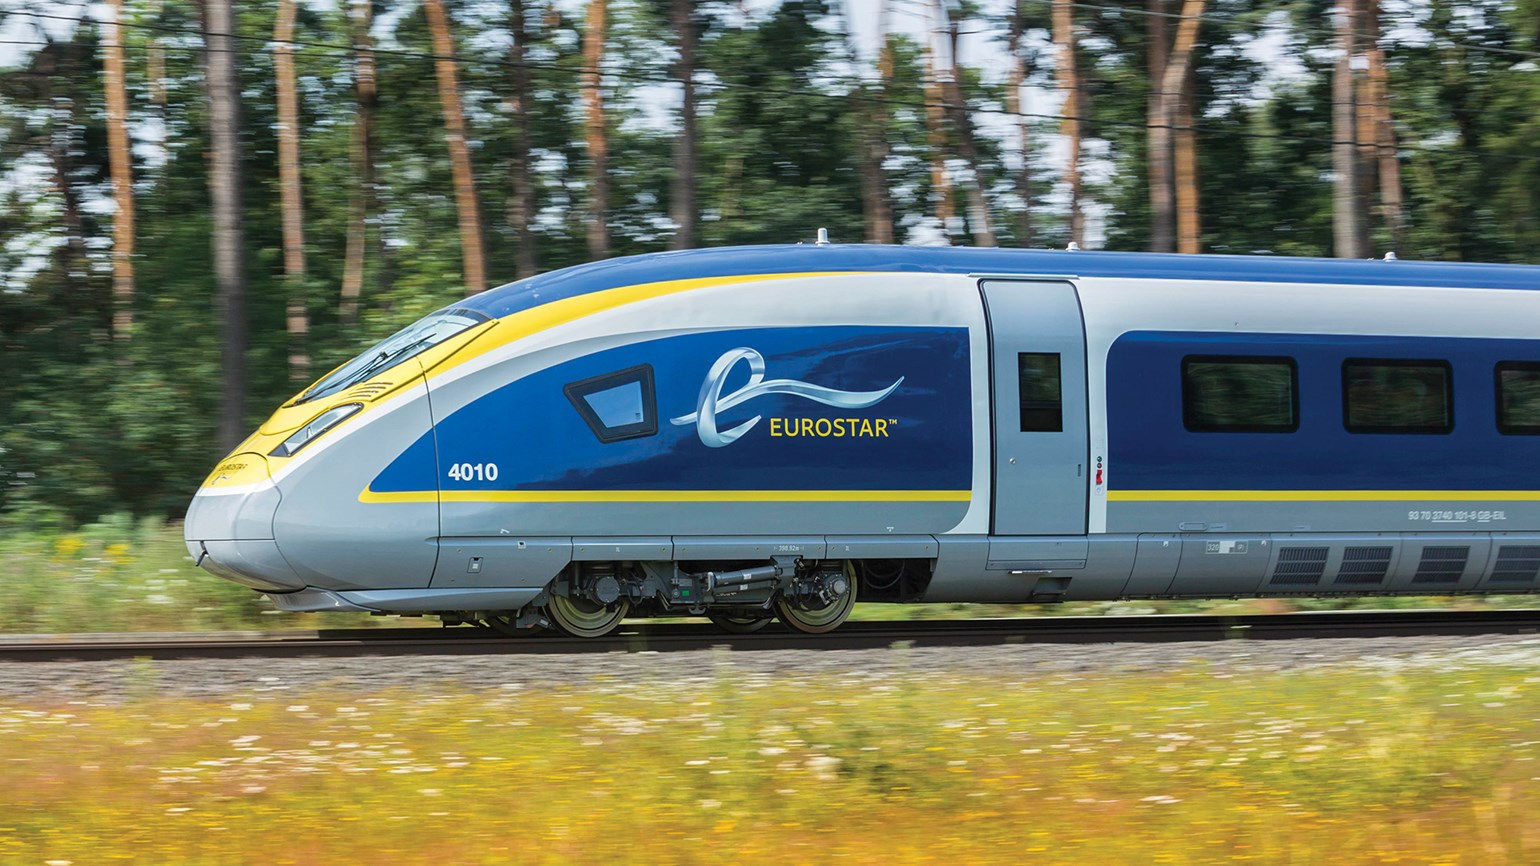 U.K. agrees to sell its 40% stake in Eurostar